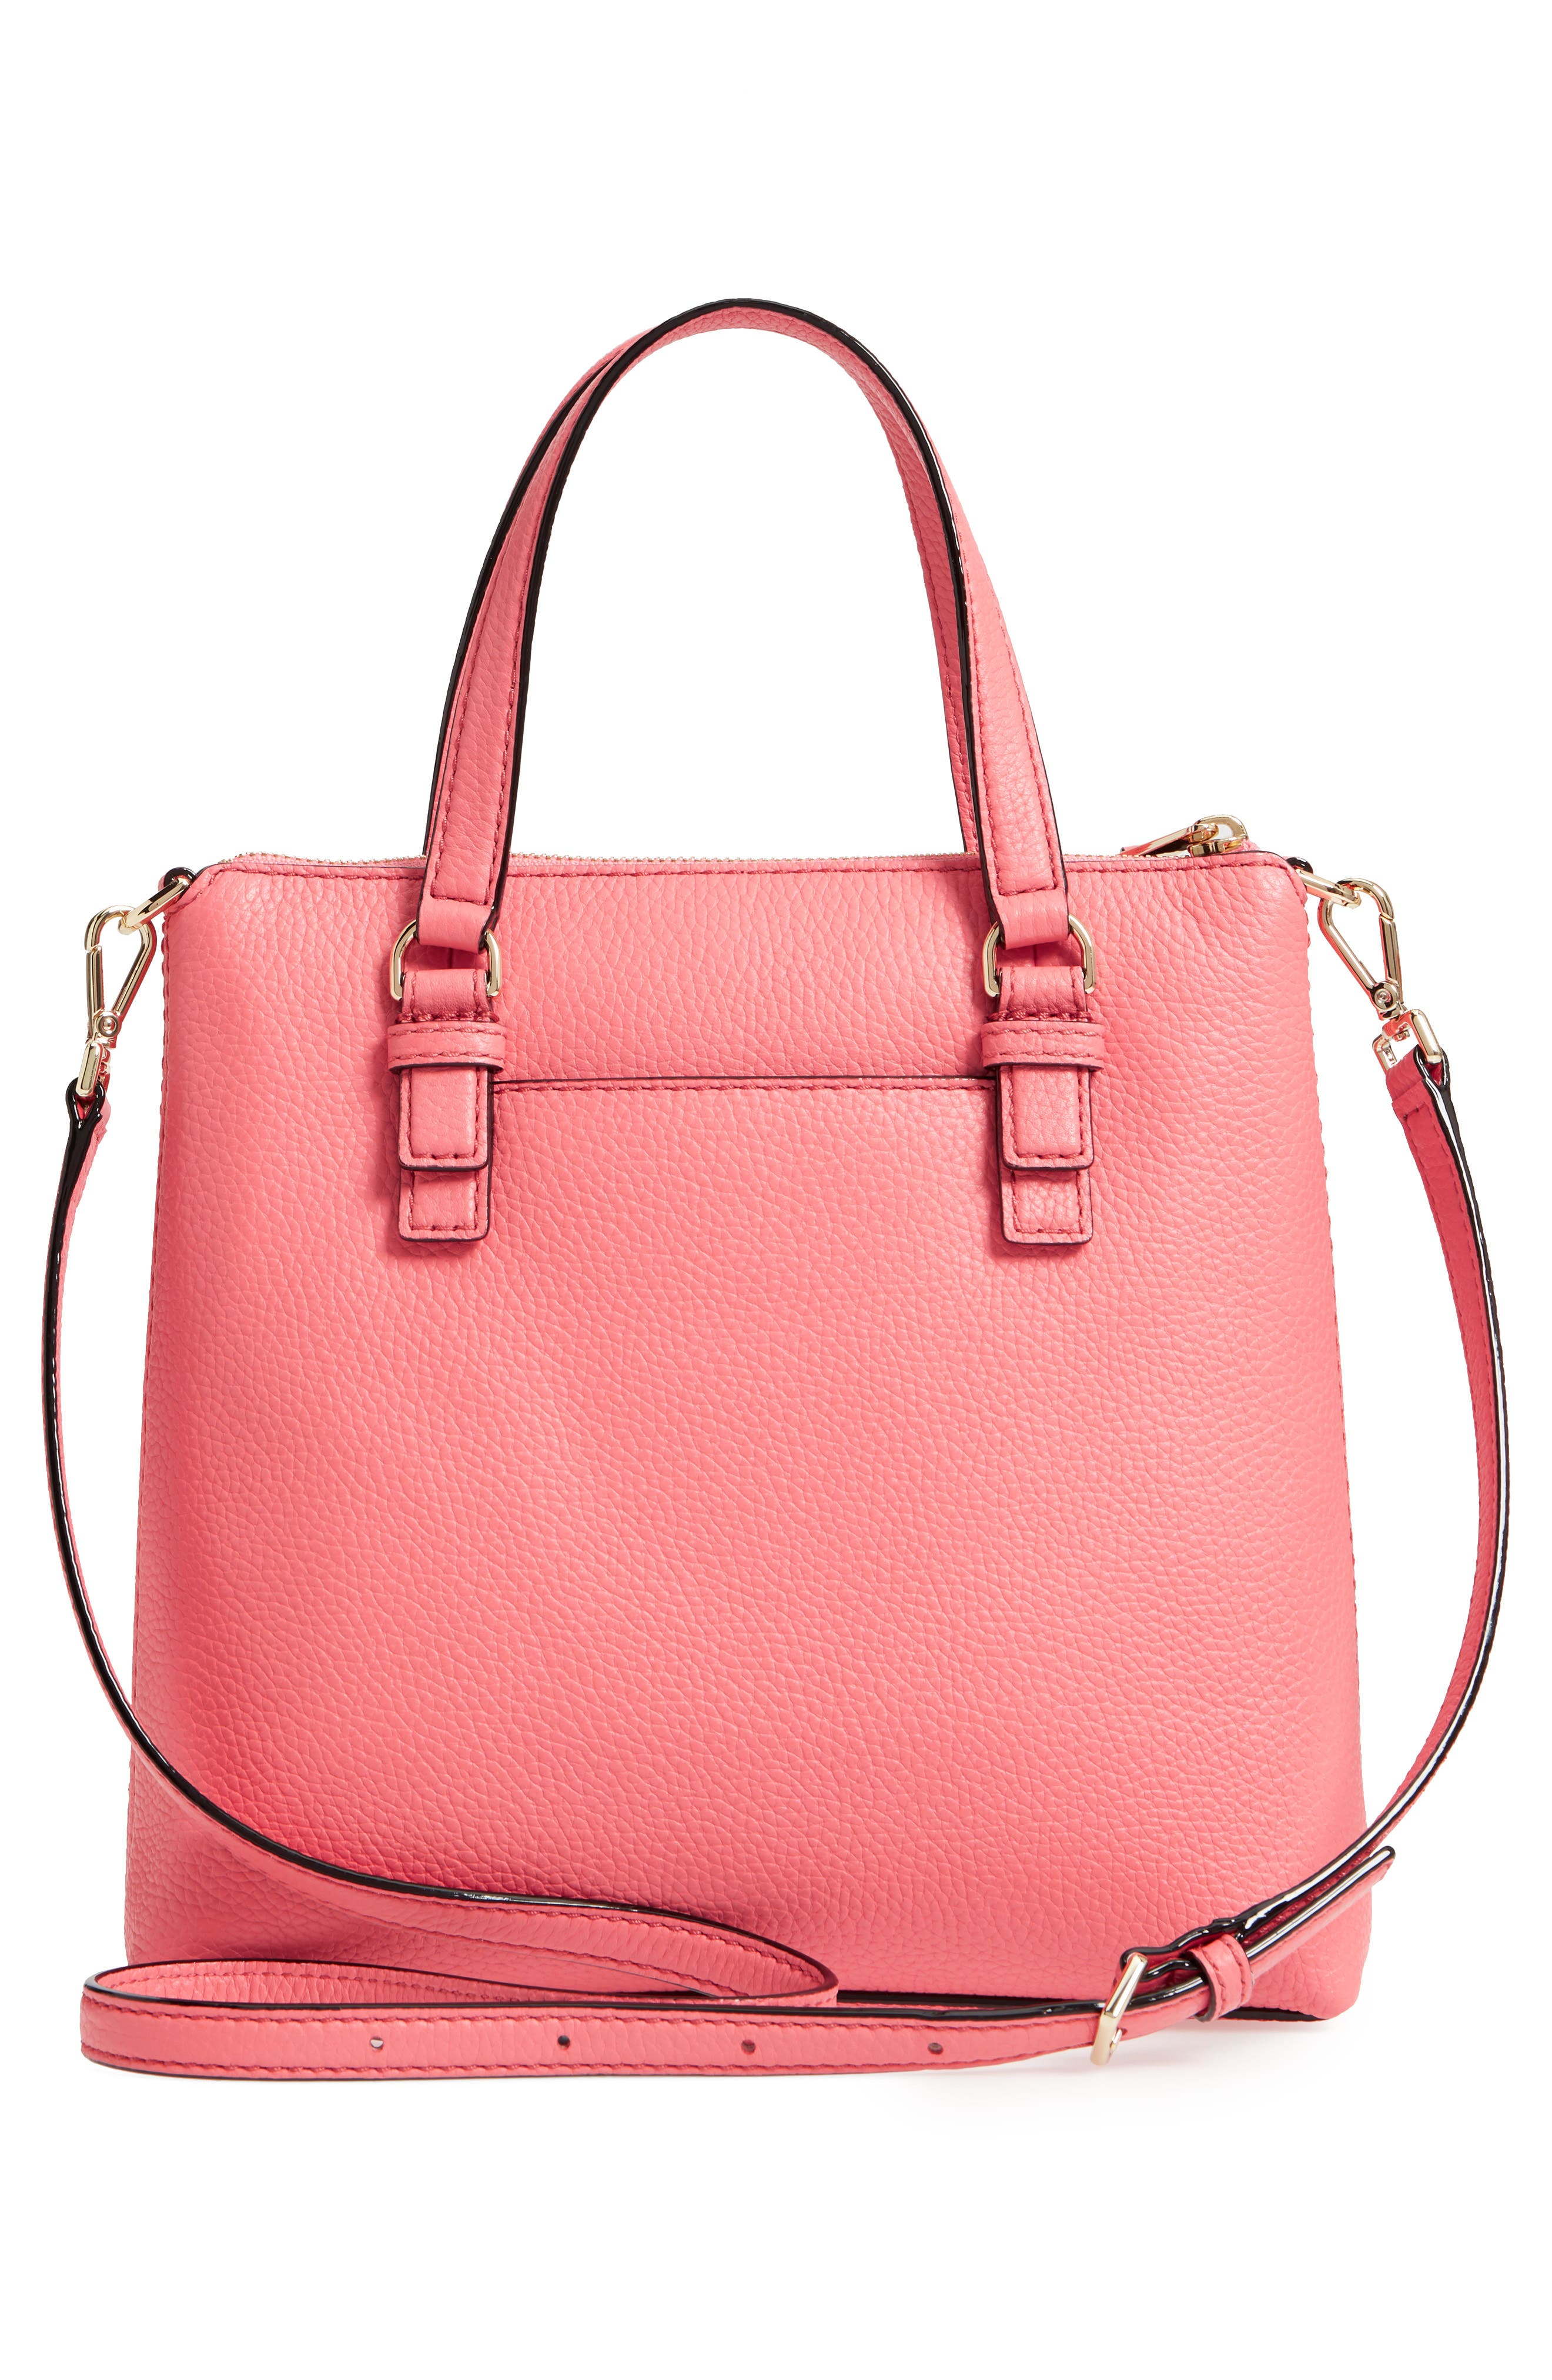 jackson street - hayley leather satchel,                             Alternate thumbnail 3, color,                             897